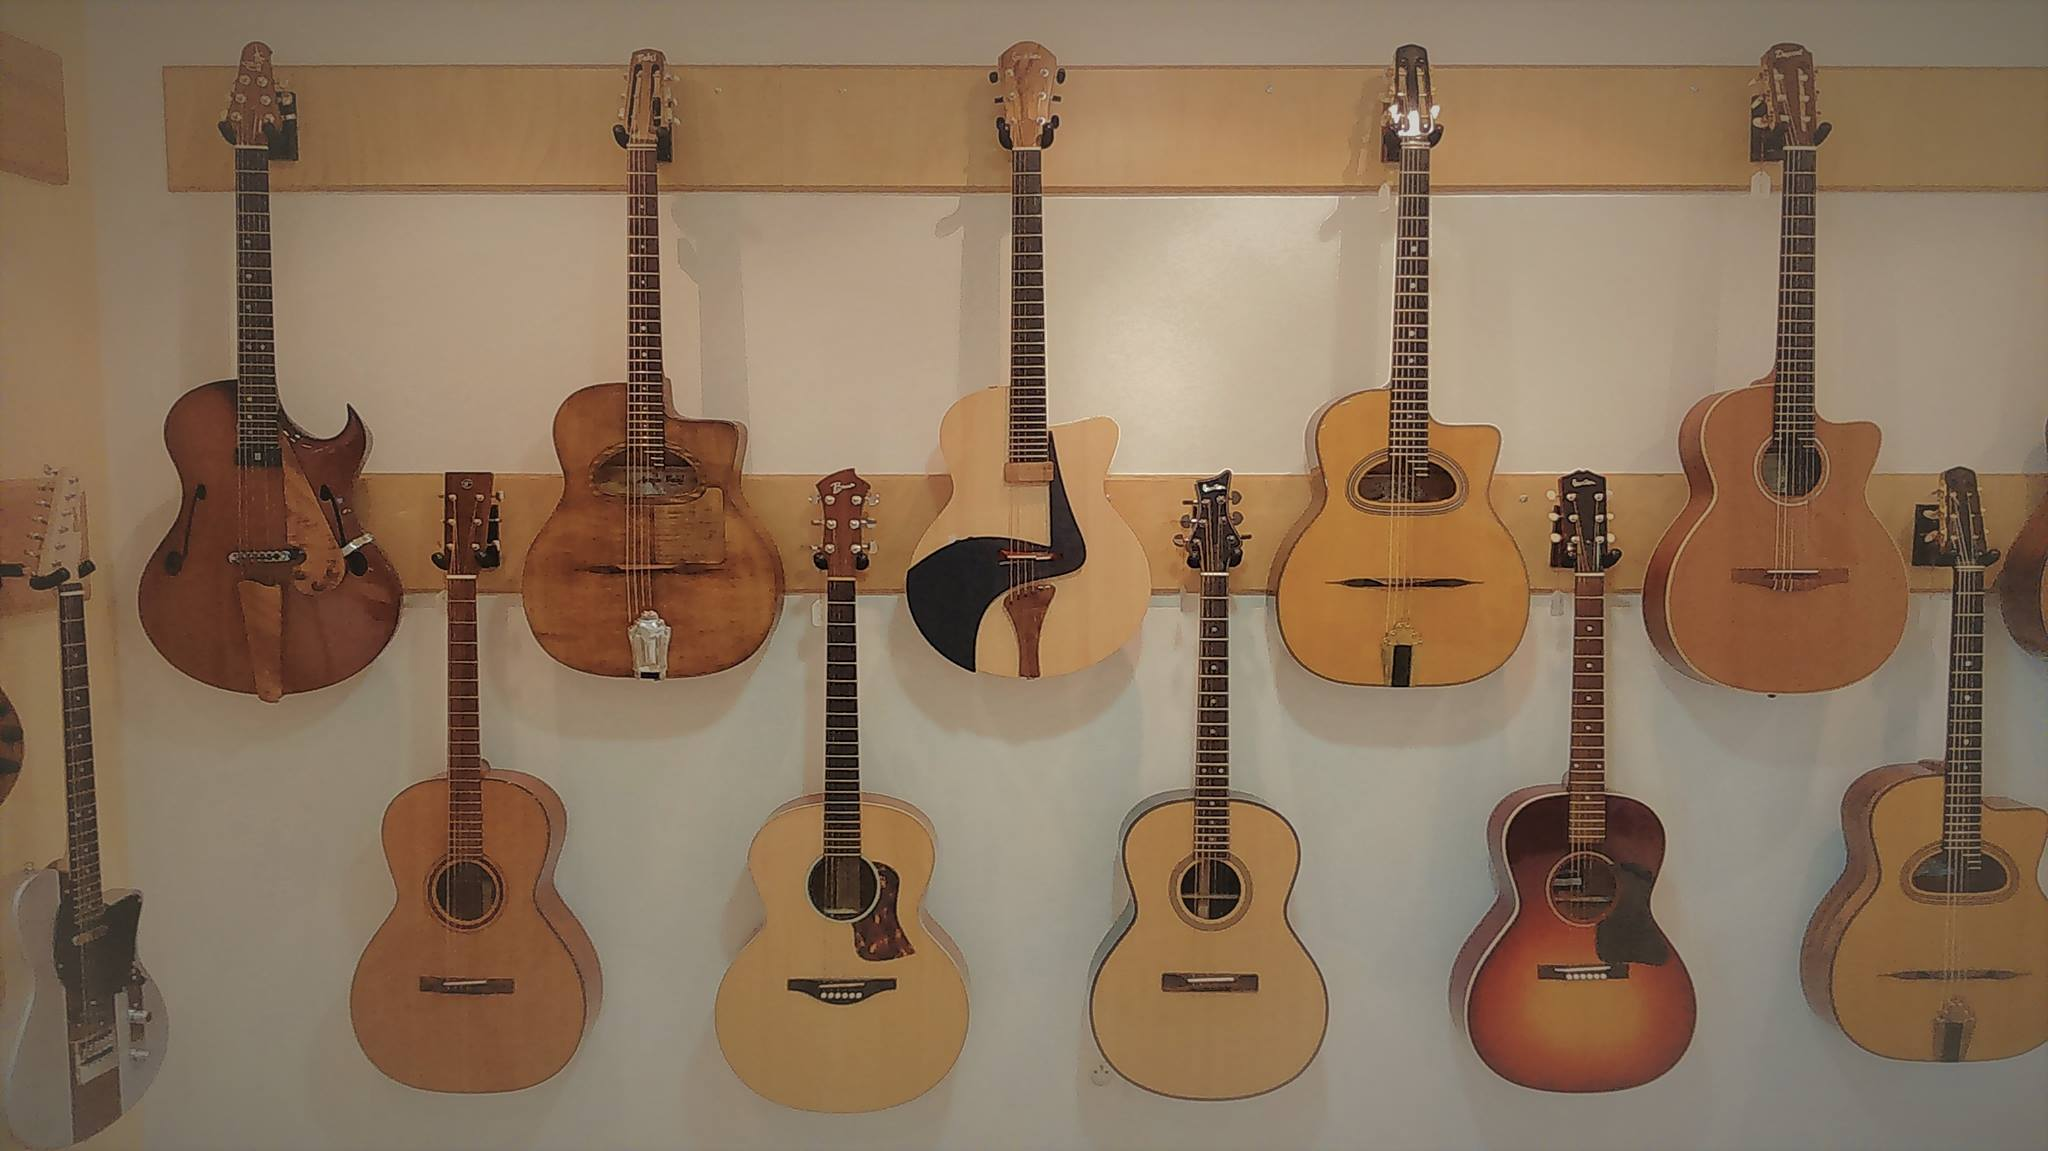 Showroom Guitares d'en France - guitares et basses de luthiers